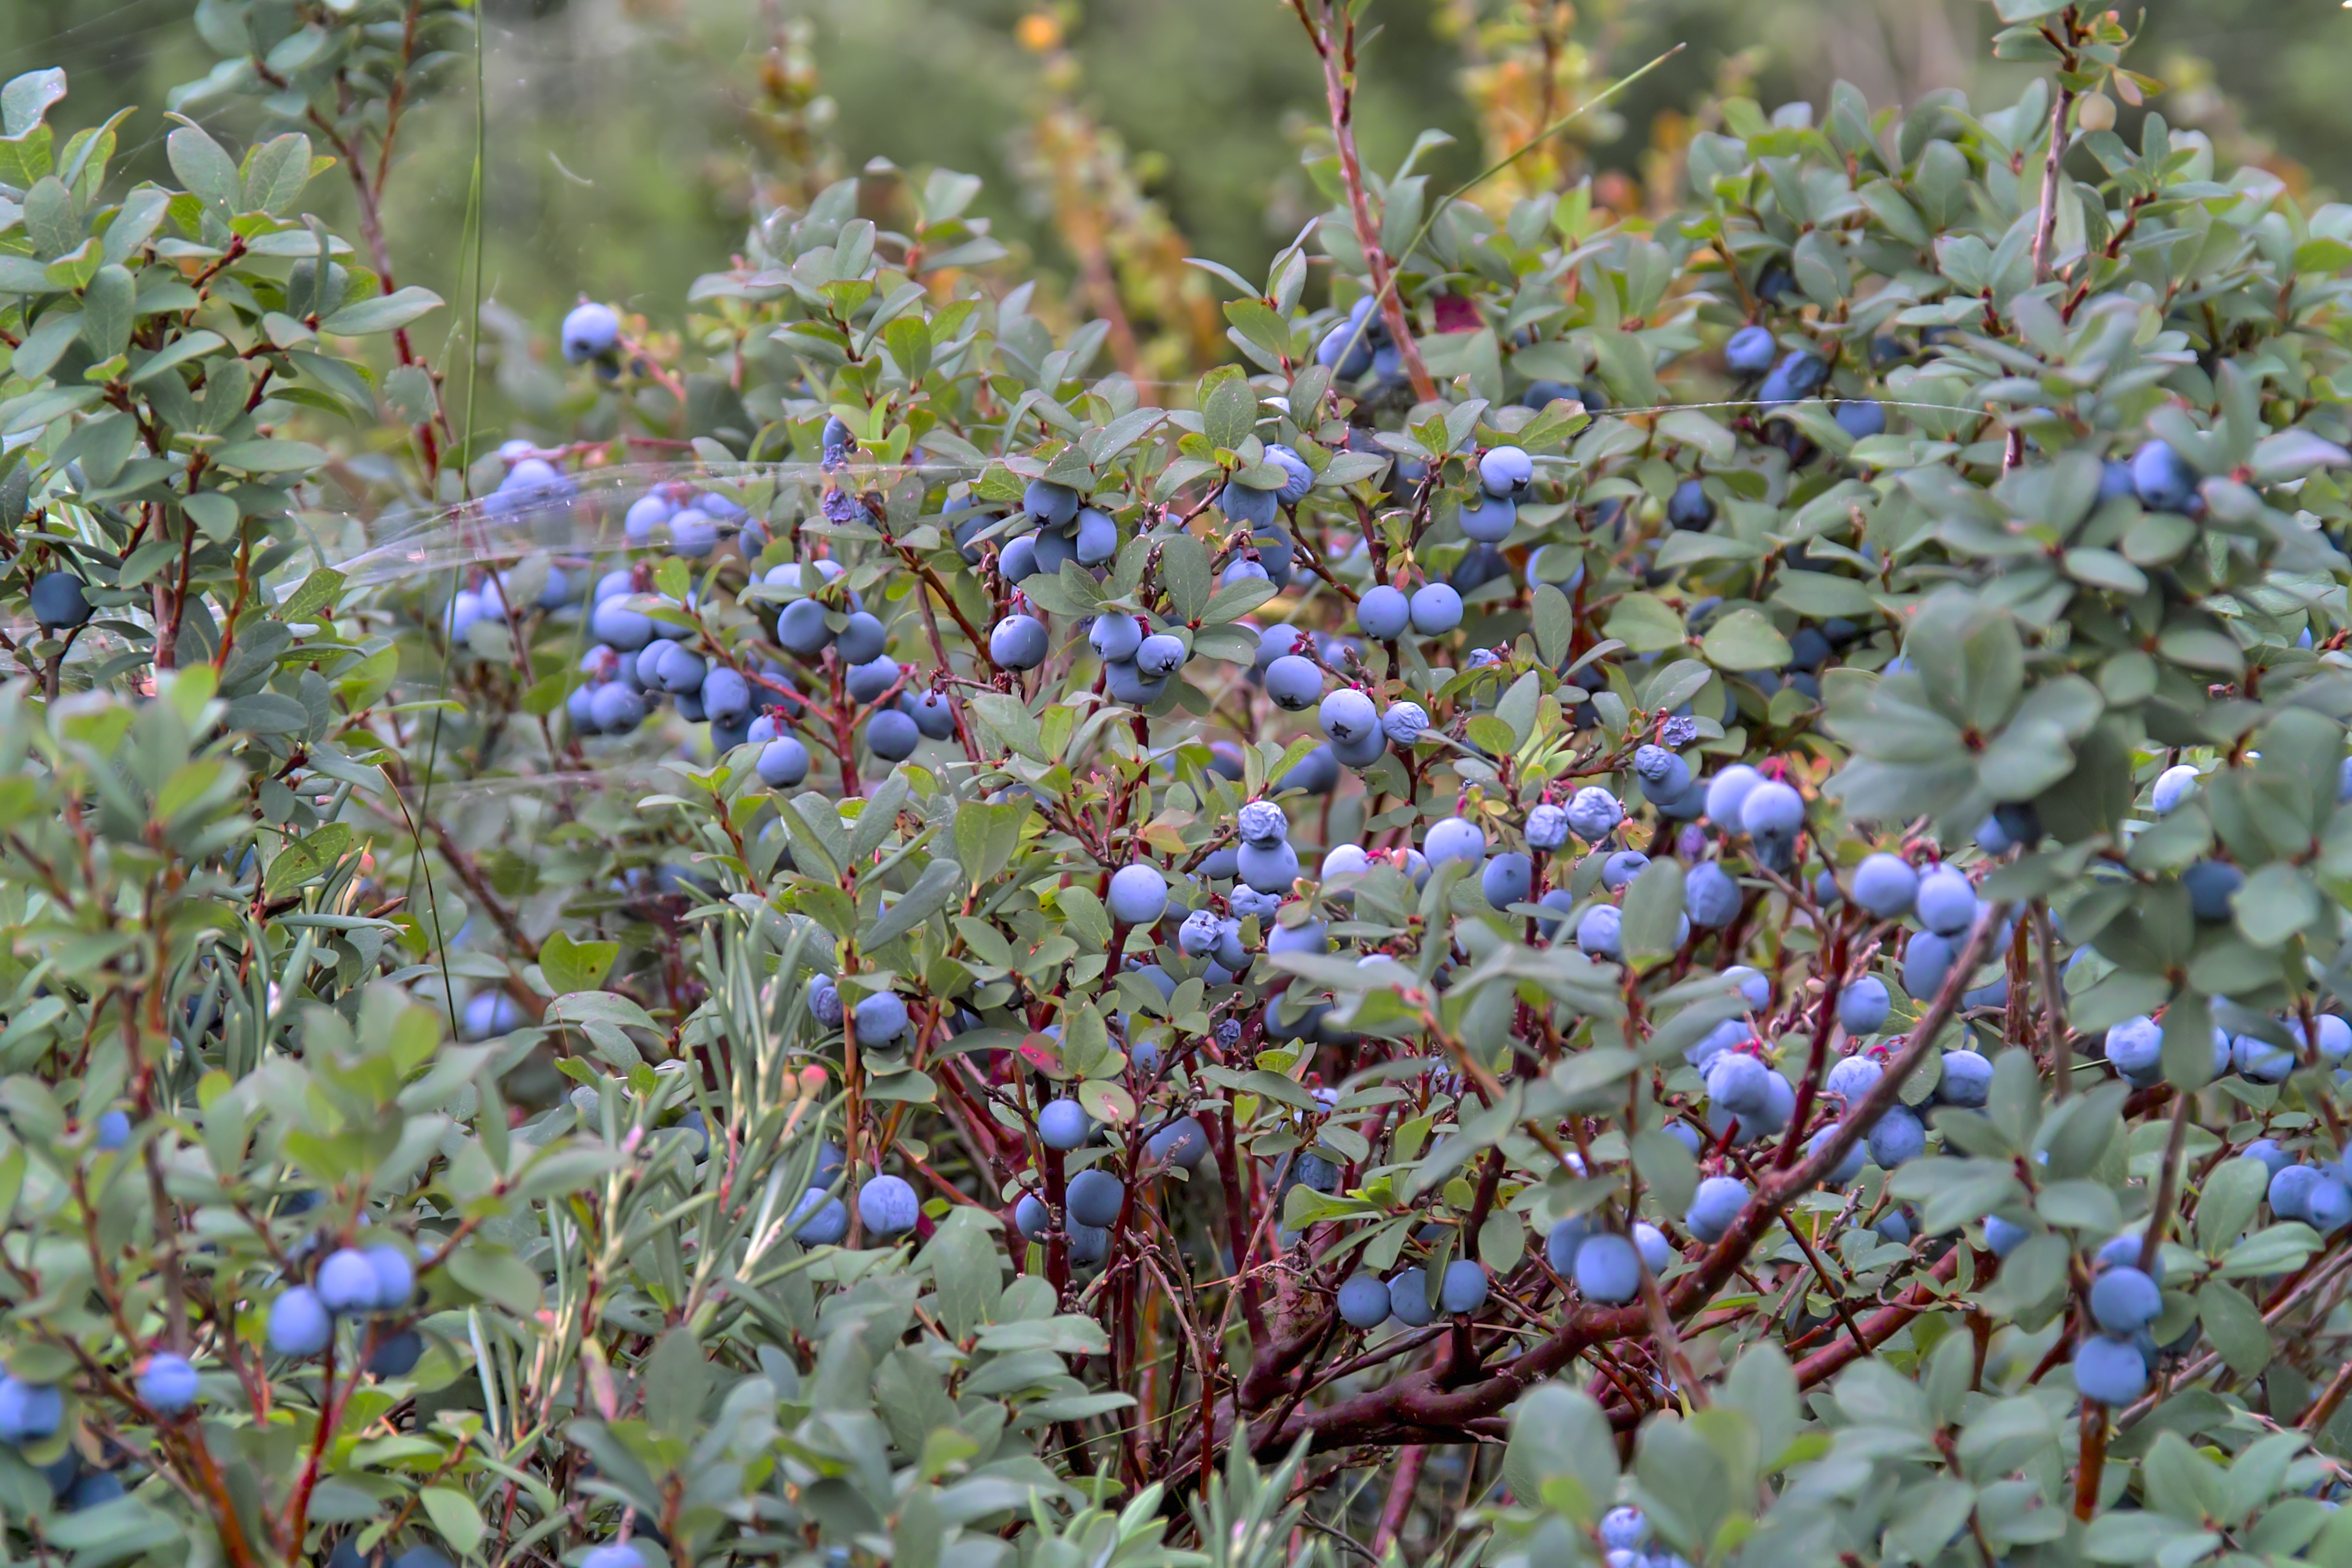 How to Identify Blueberry Bushes | Home Guides | SF Gate